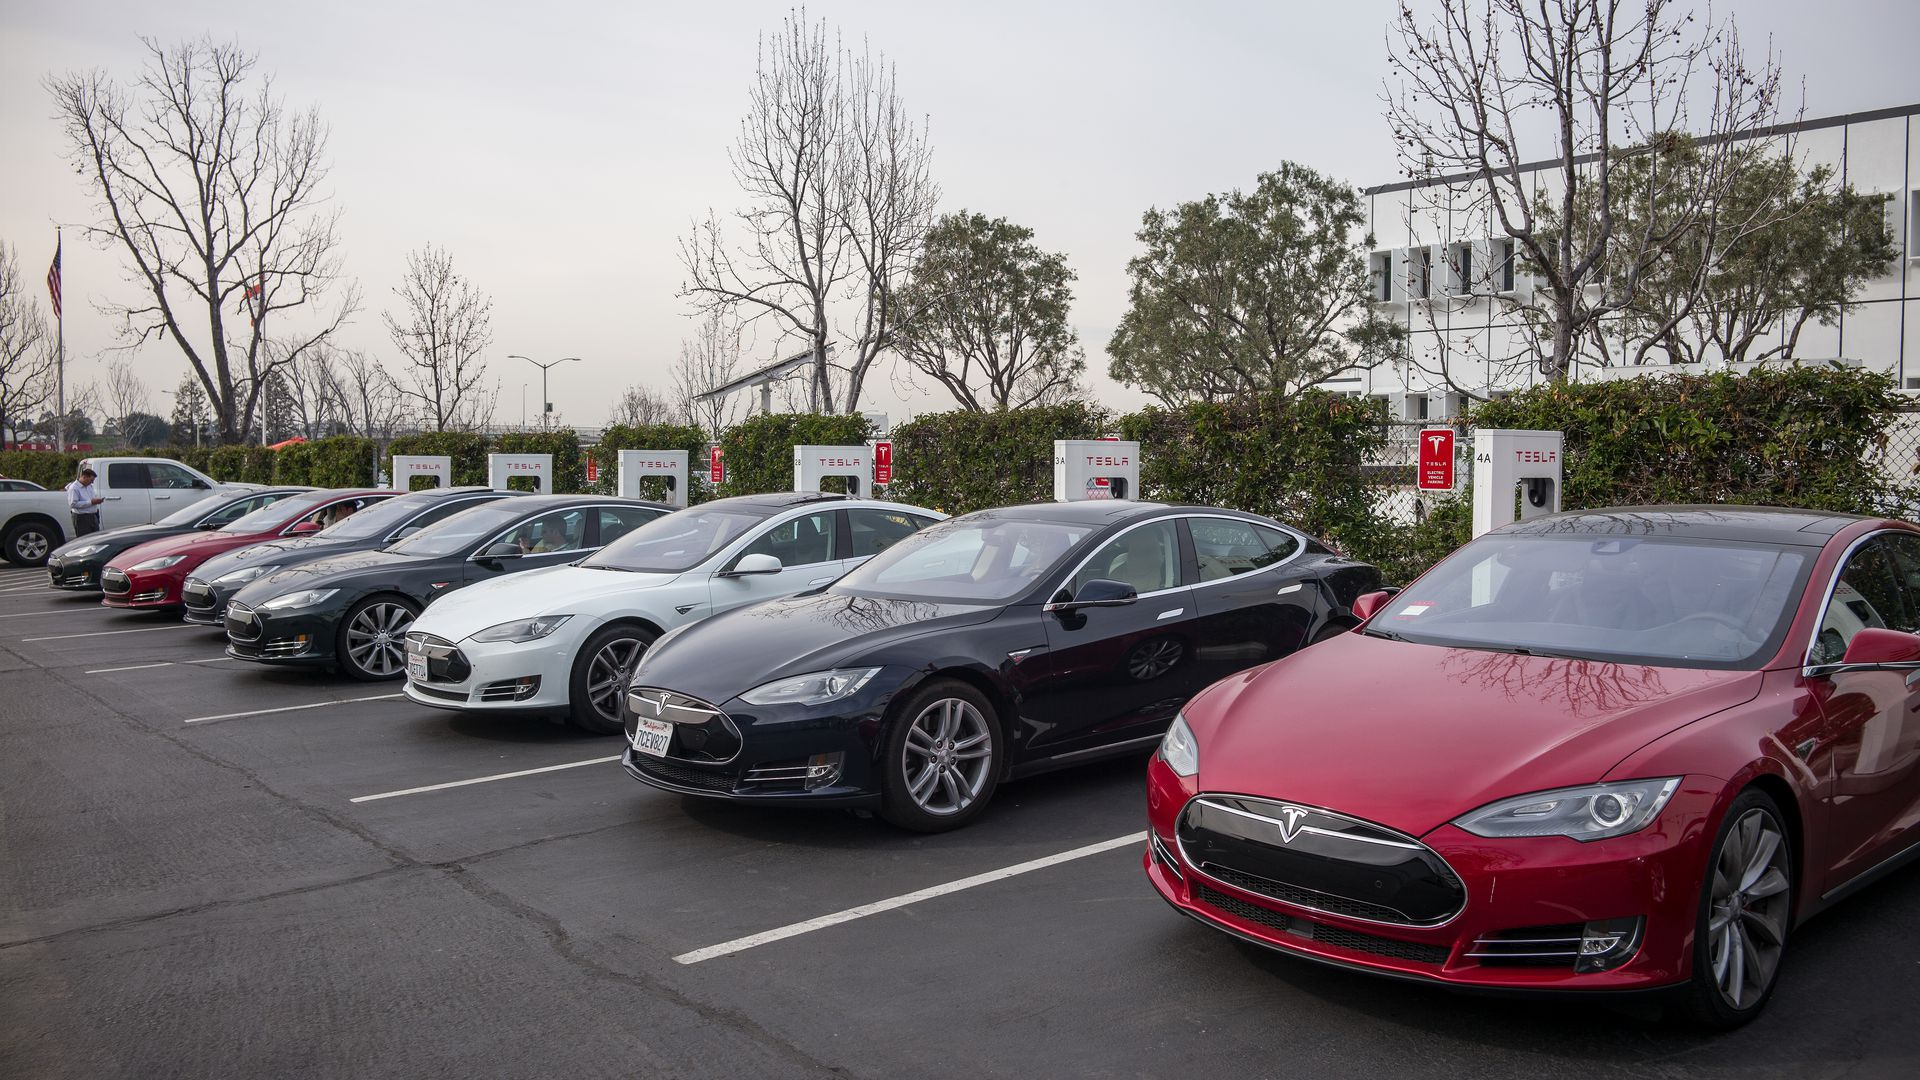 Cars charge at stations outside of Tesla's factory in Fremont